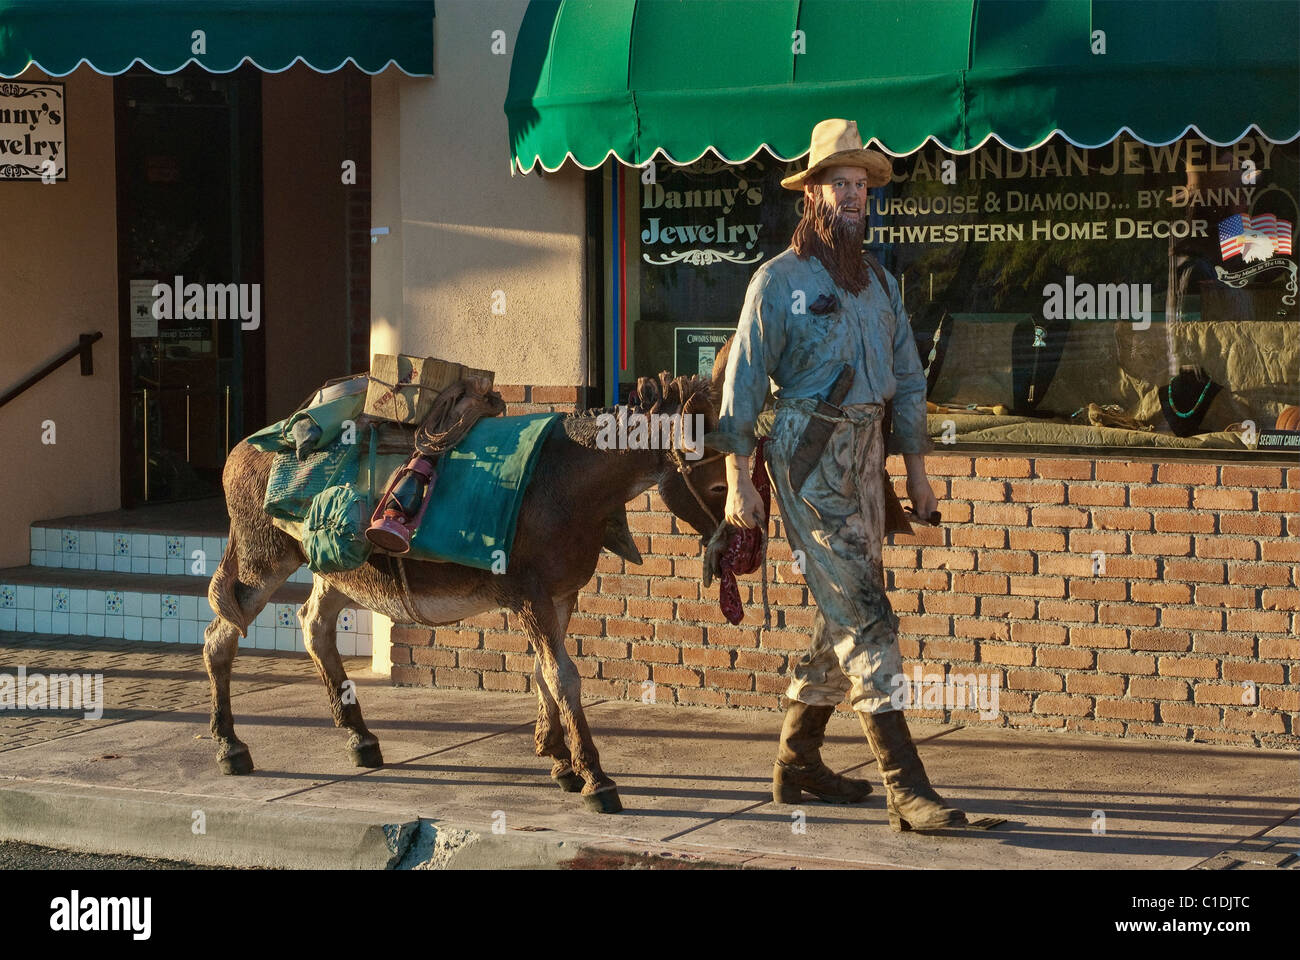 Gold prospector and donkey figures on Tegner Street in Wickenburg, Arizona, USA - Stock Image